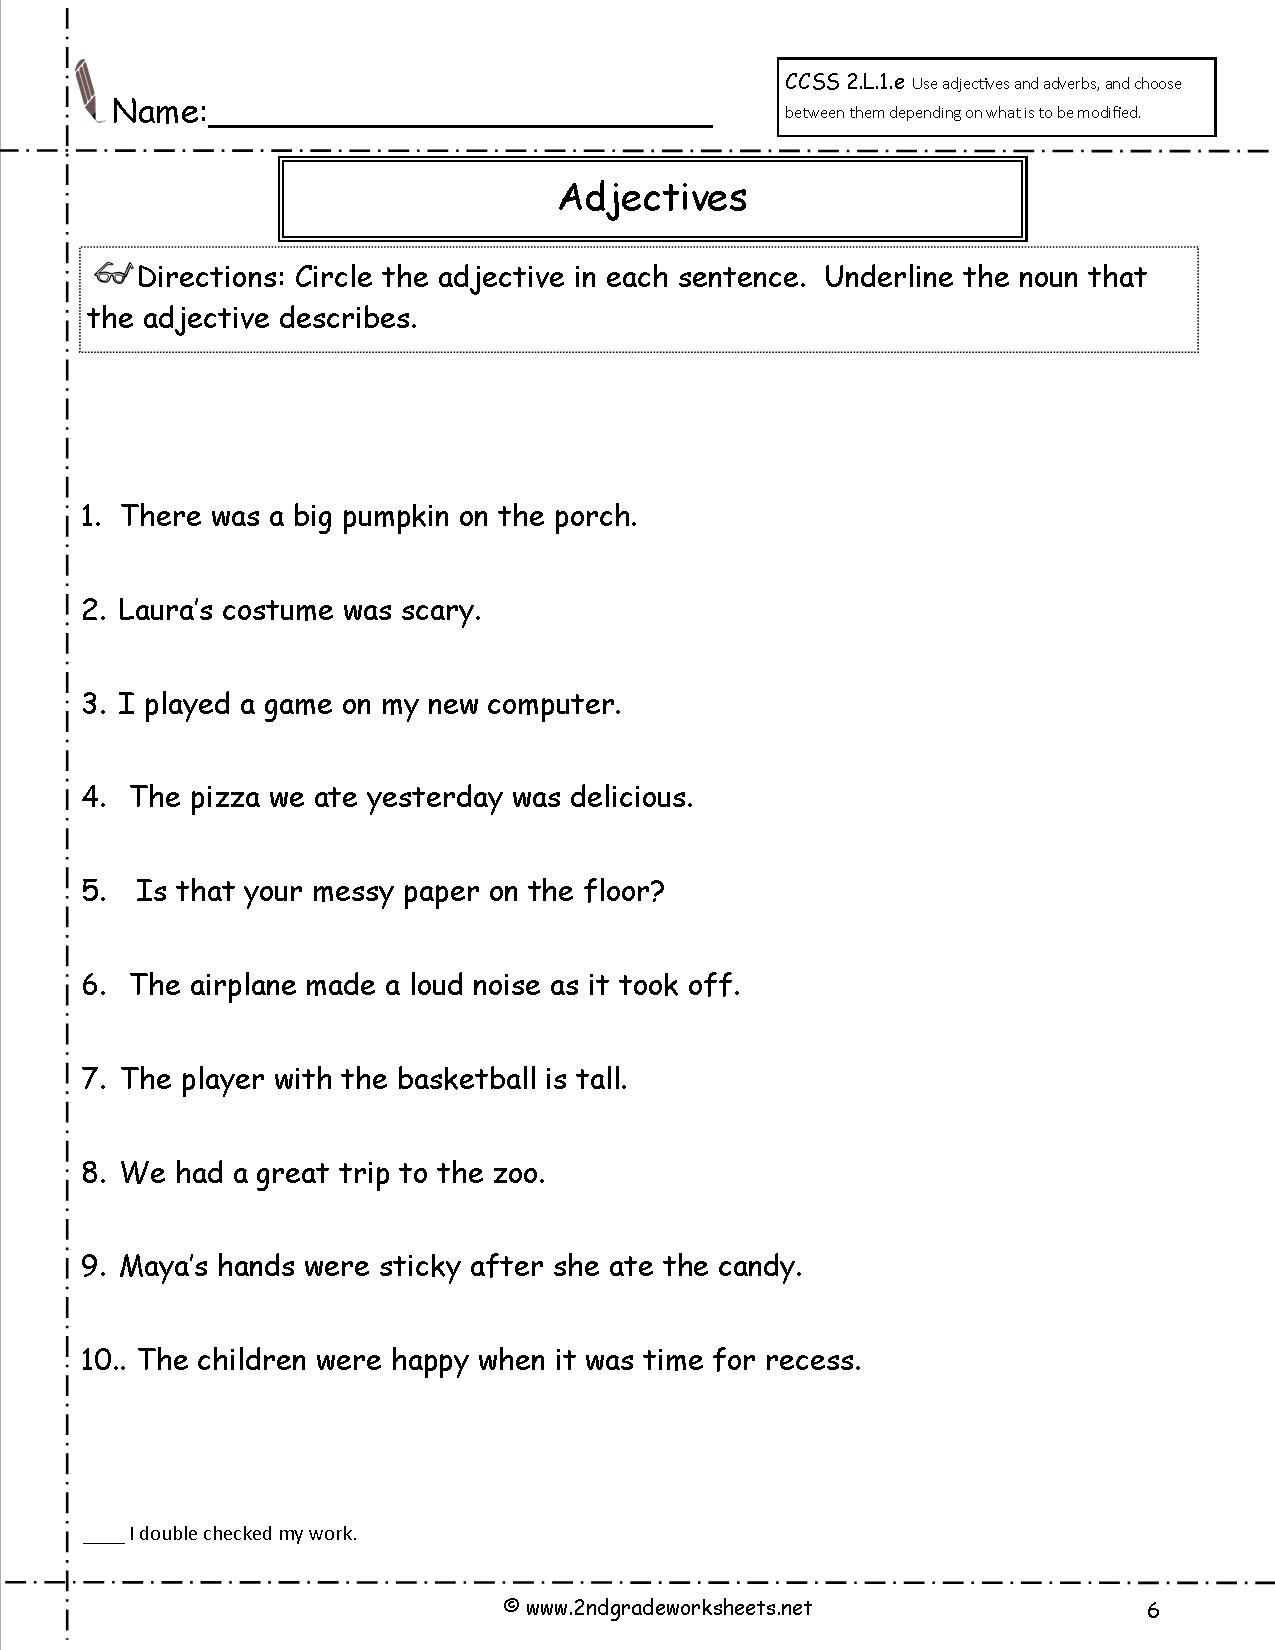 Free Printable Adjective Worksheets Adjectives Worksheet for First Grade